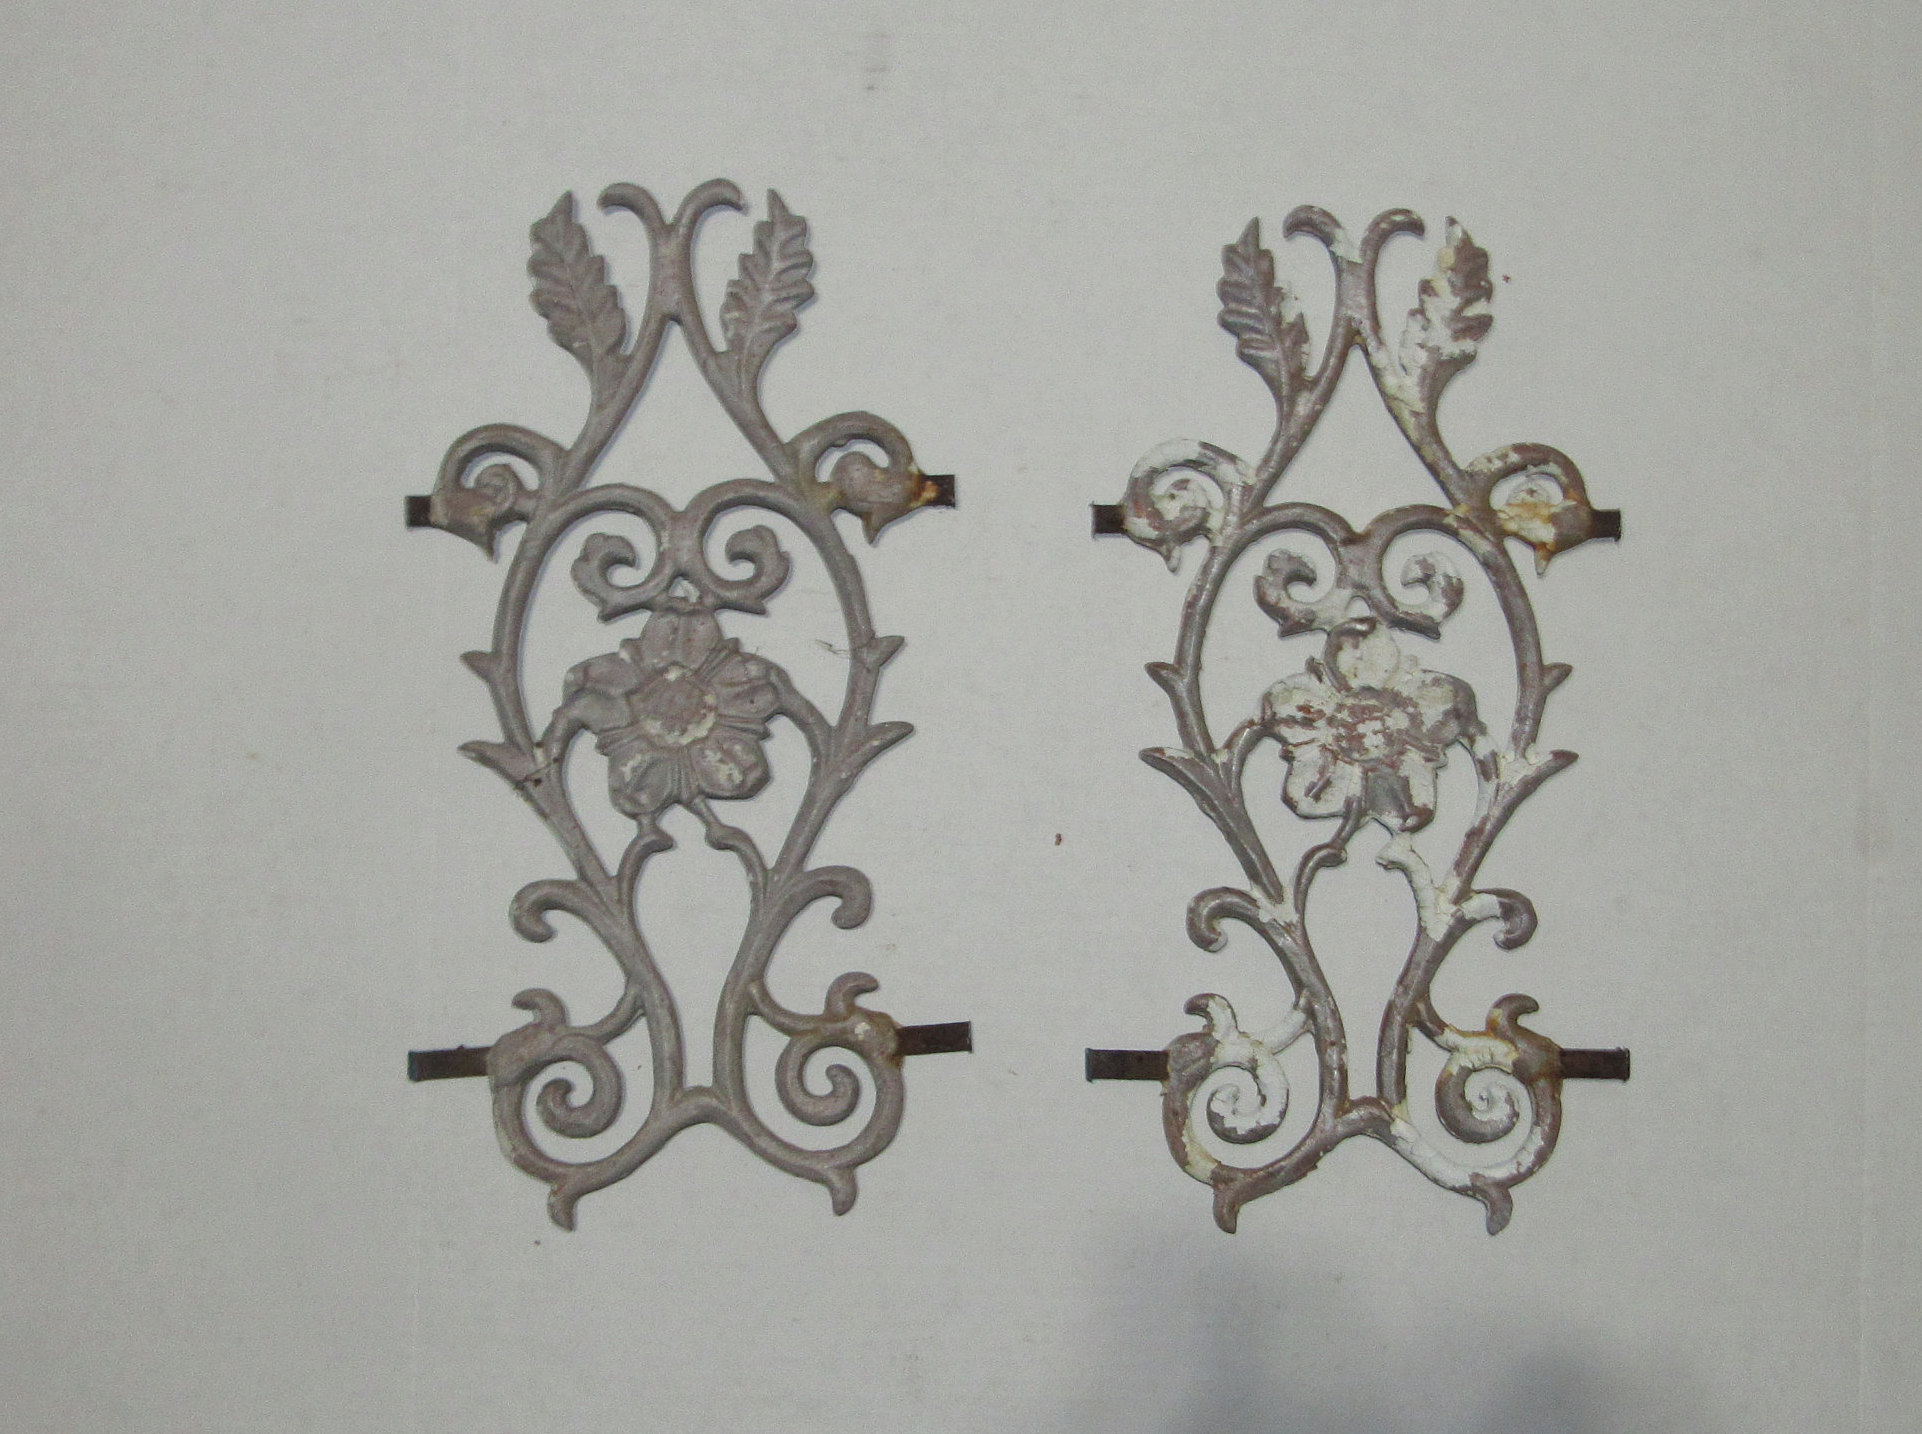 Favorite Ornate Scroll Wall Decor Within 2 Architectural Salvage Pieces Ornate Repurpose Art Decor (View 15 of 20)